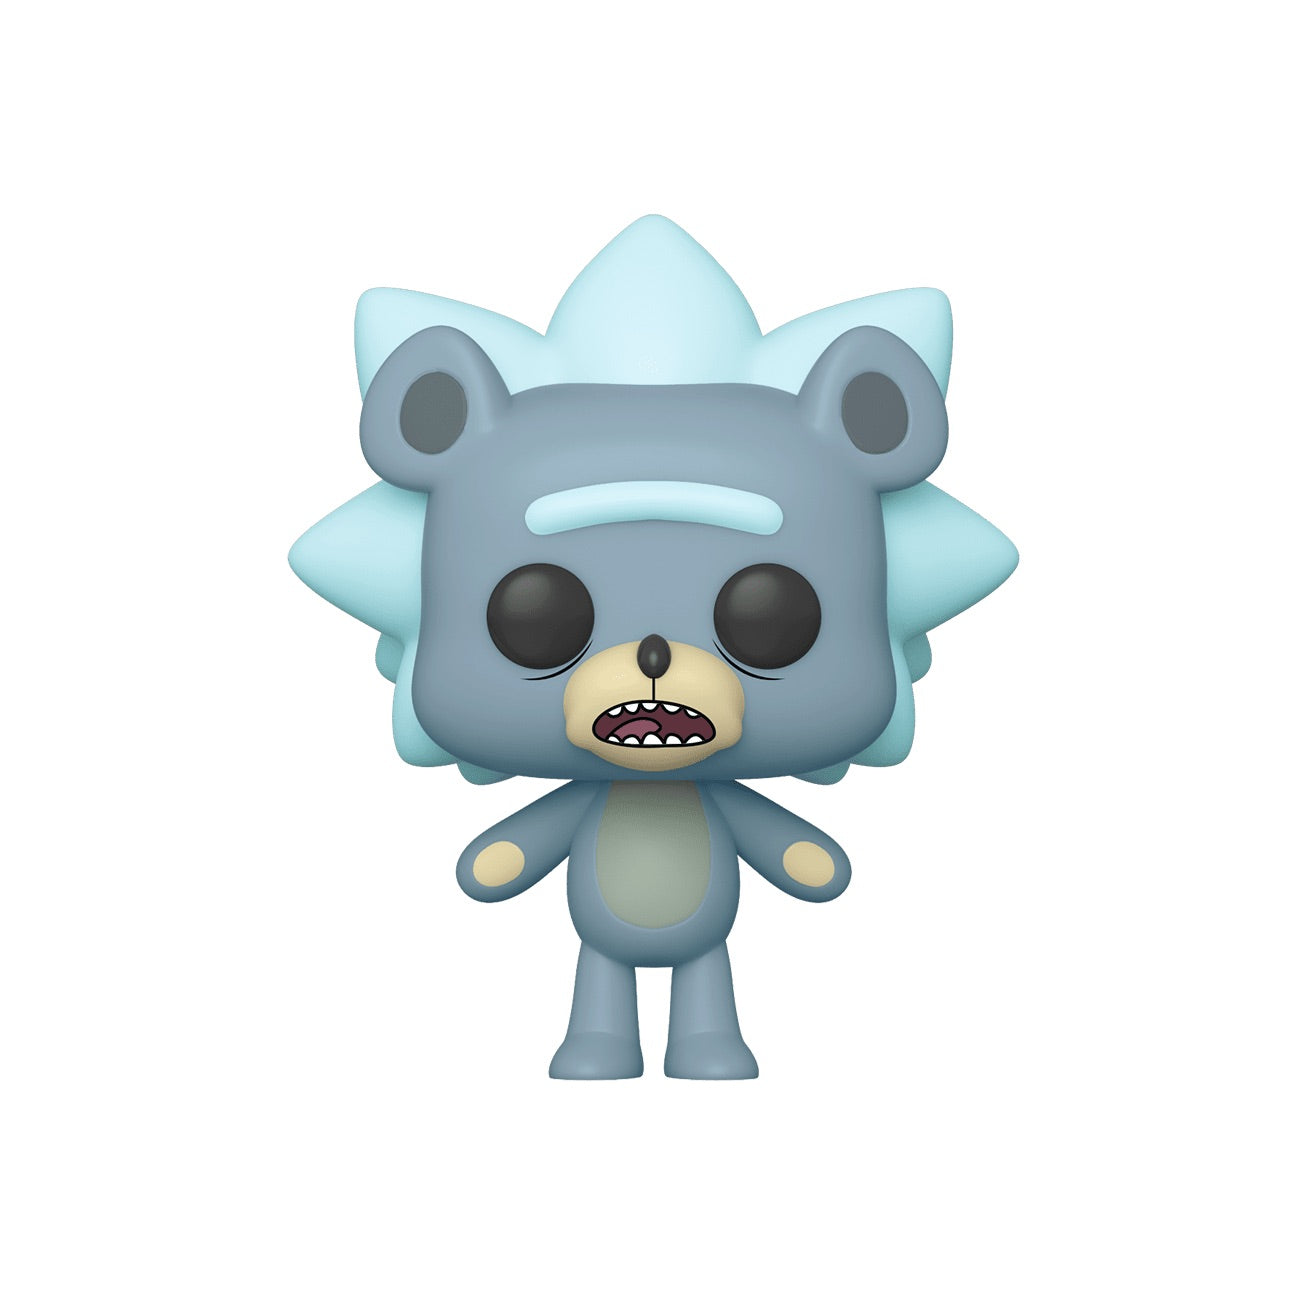 Rick and Morty Teddy Rick